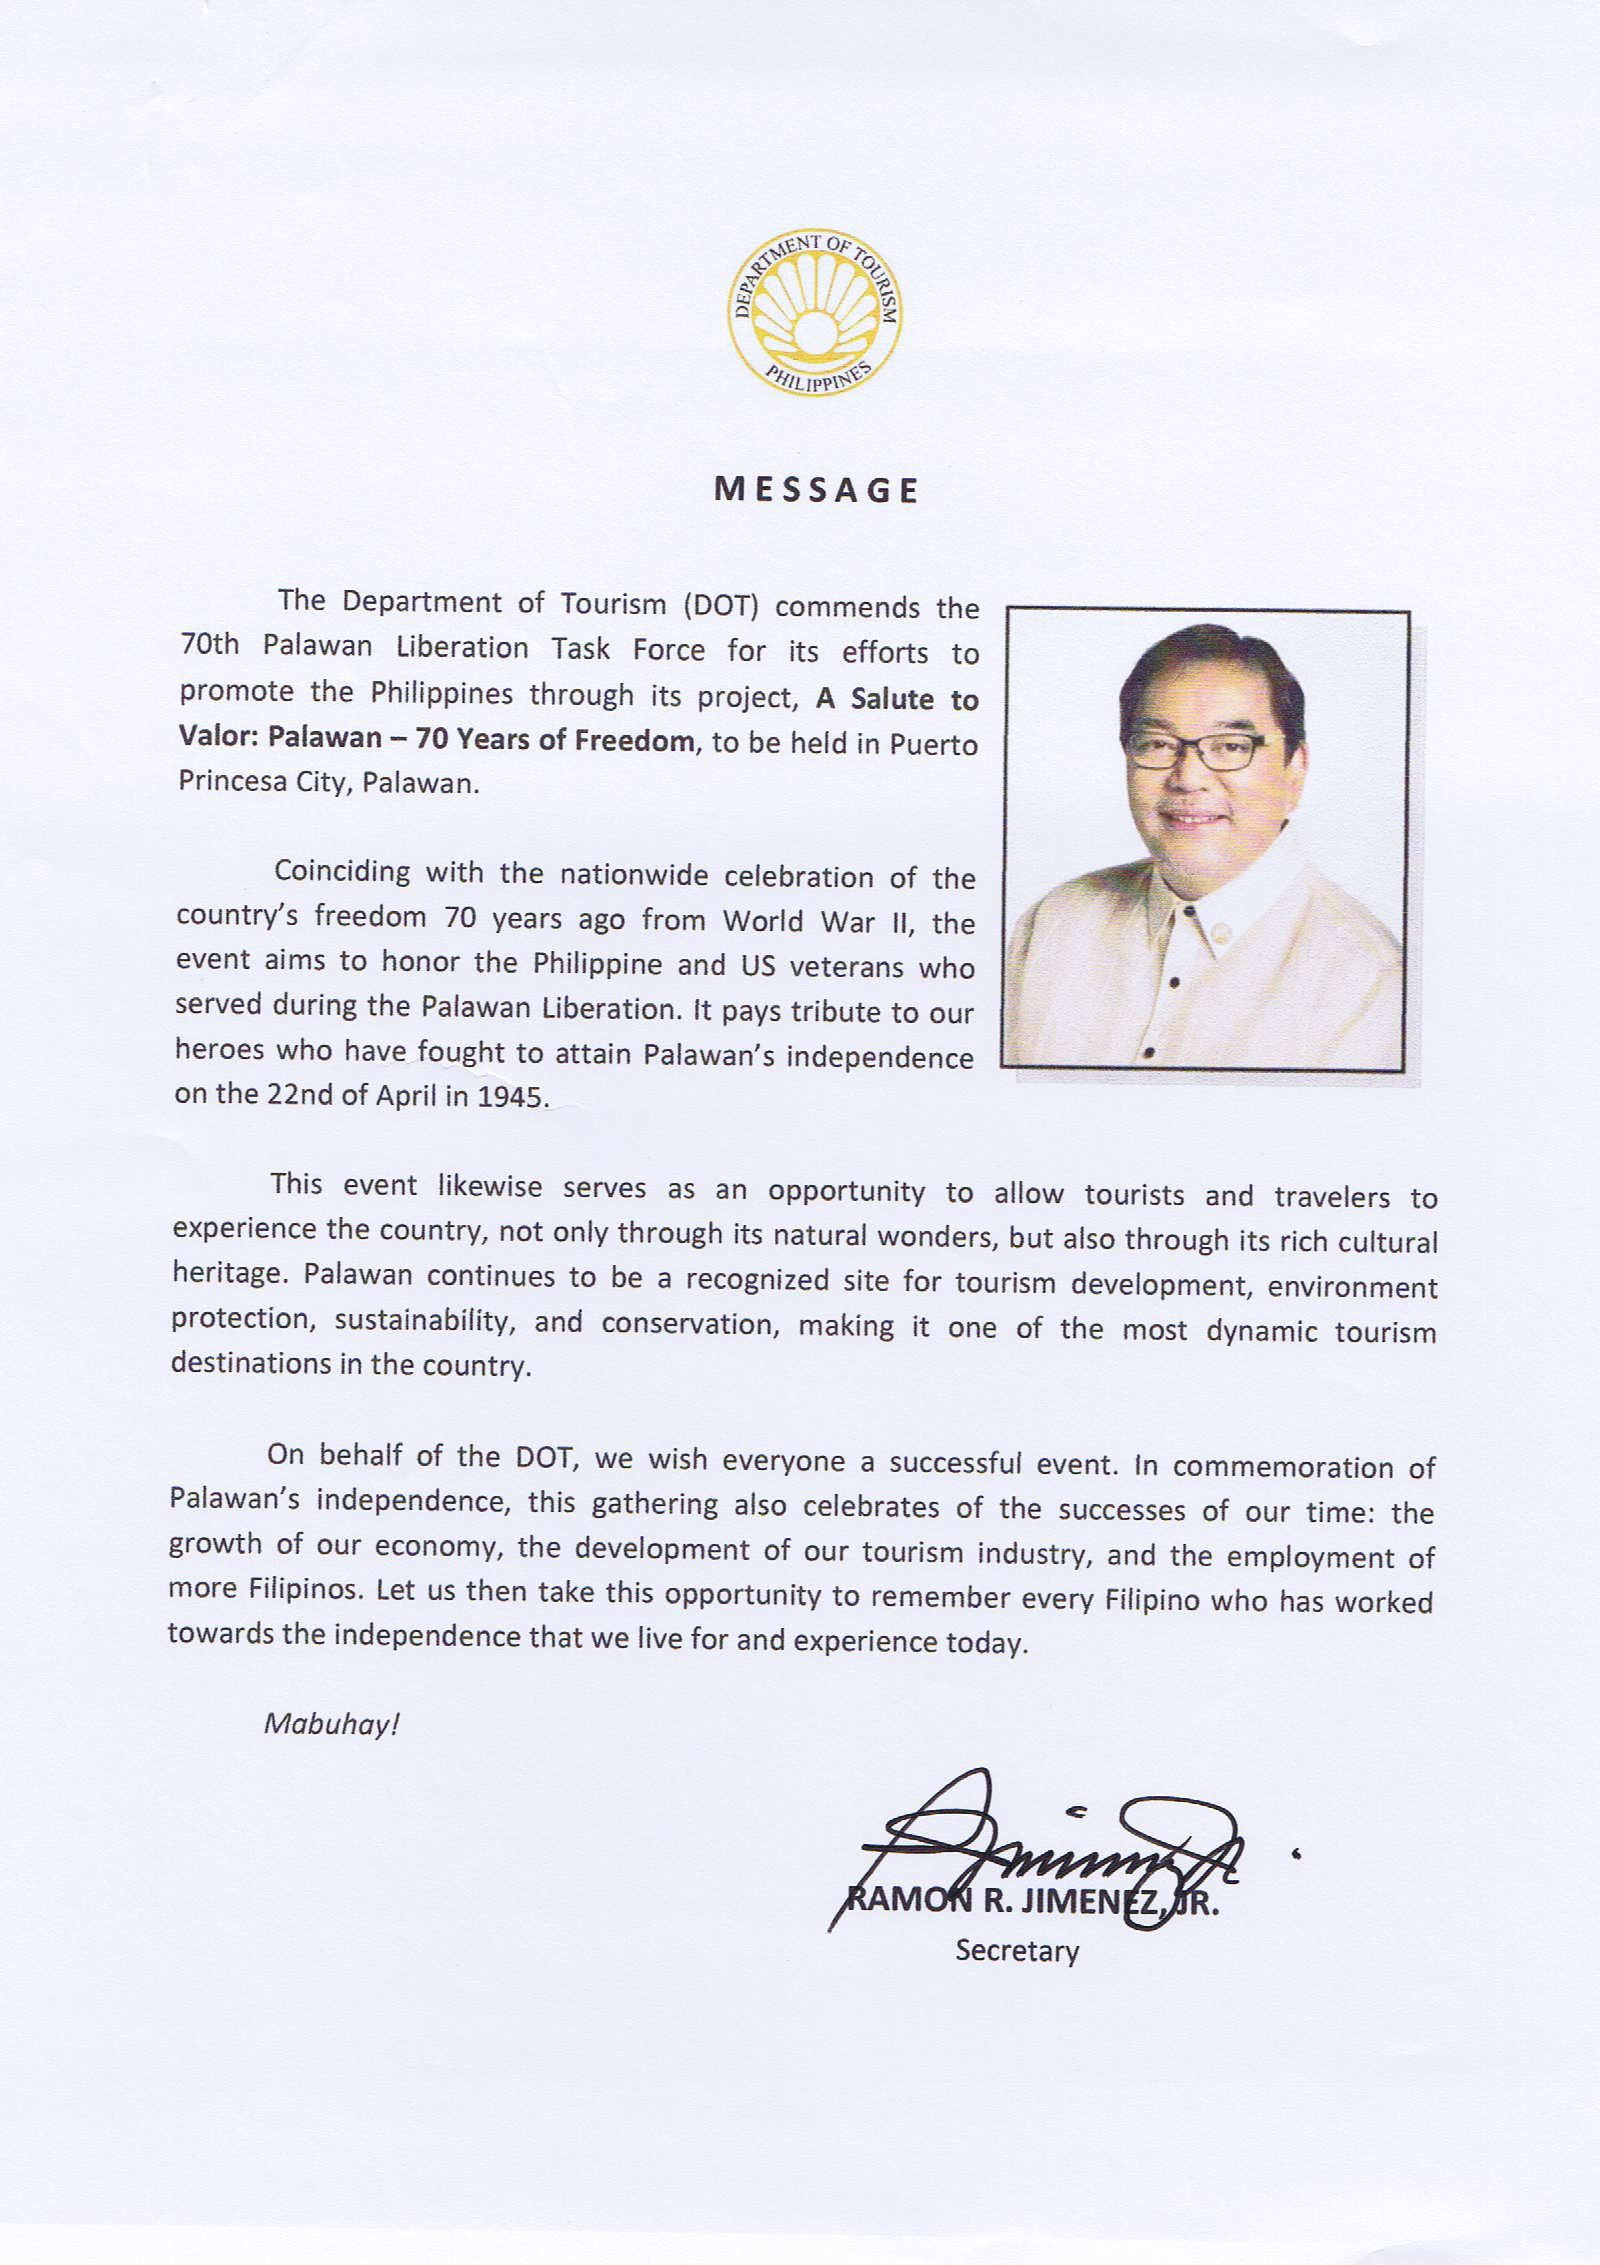 Department Of Tourism Secretary Ramon R Jimenez Jr Writes A